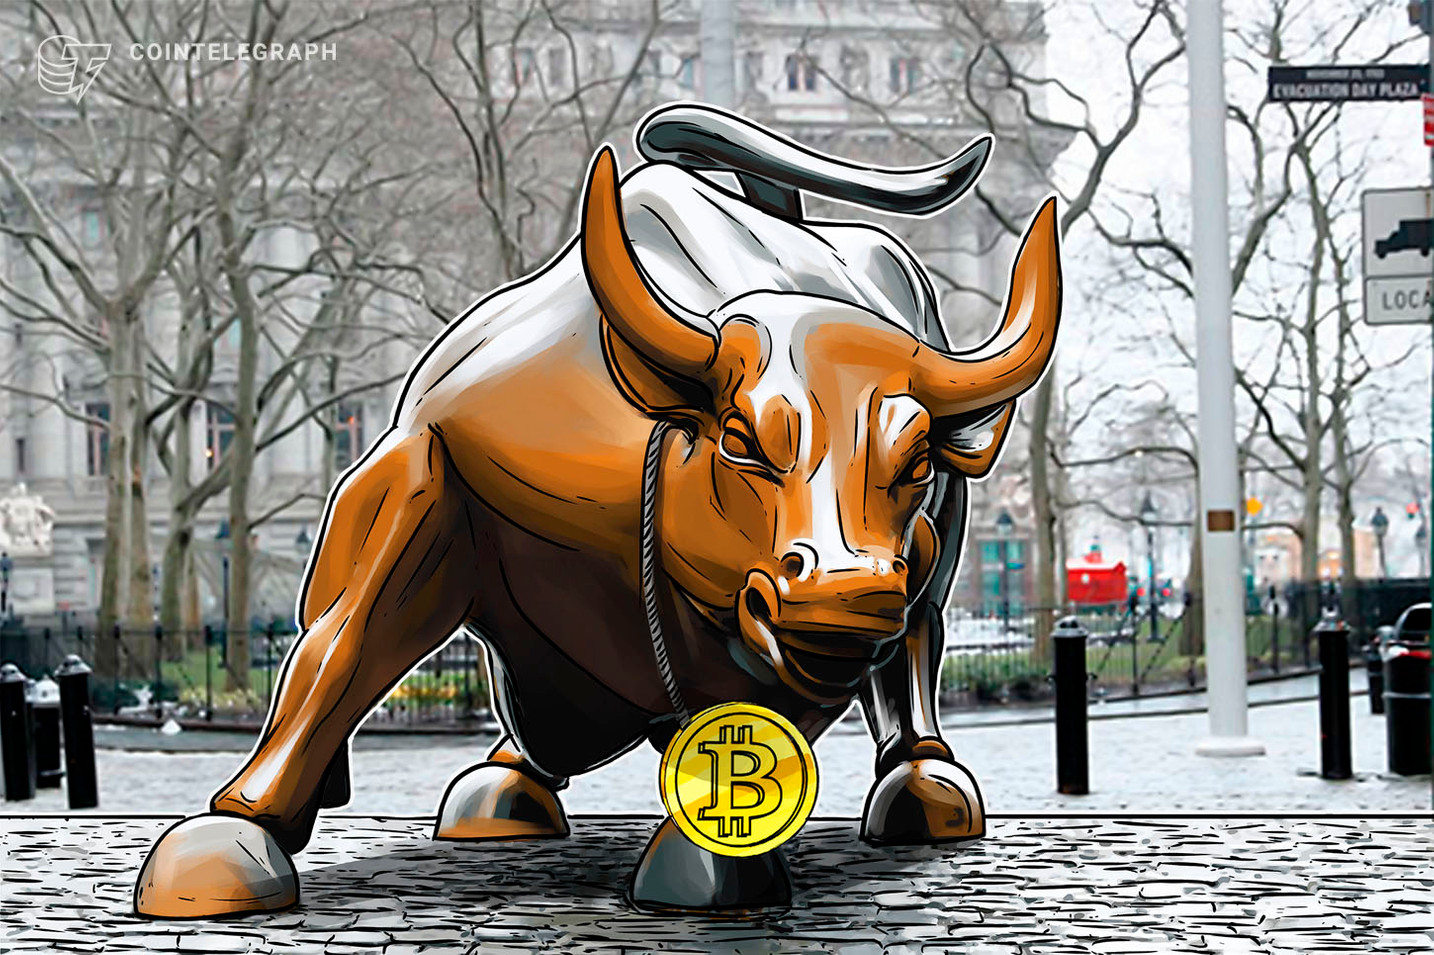 New Bull Market Signal? Bitcoin Bearwhale Vanishes as BTC Hits $10K